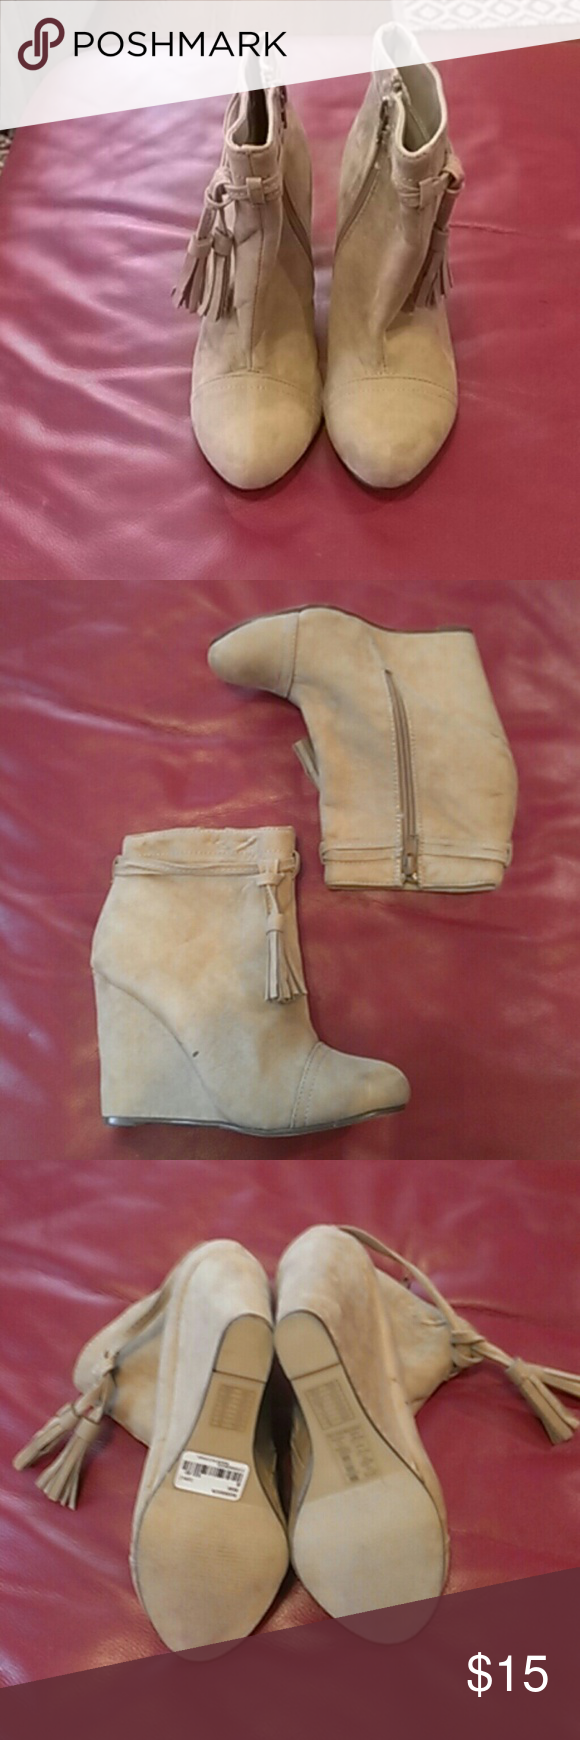 Ankle Boots Forever21(girls) Ankle Boots Forever21(girls), color beige, Forever 21 Shoes Boots